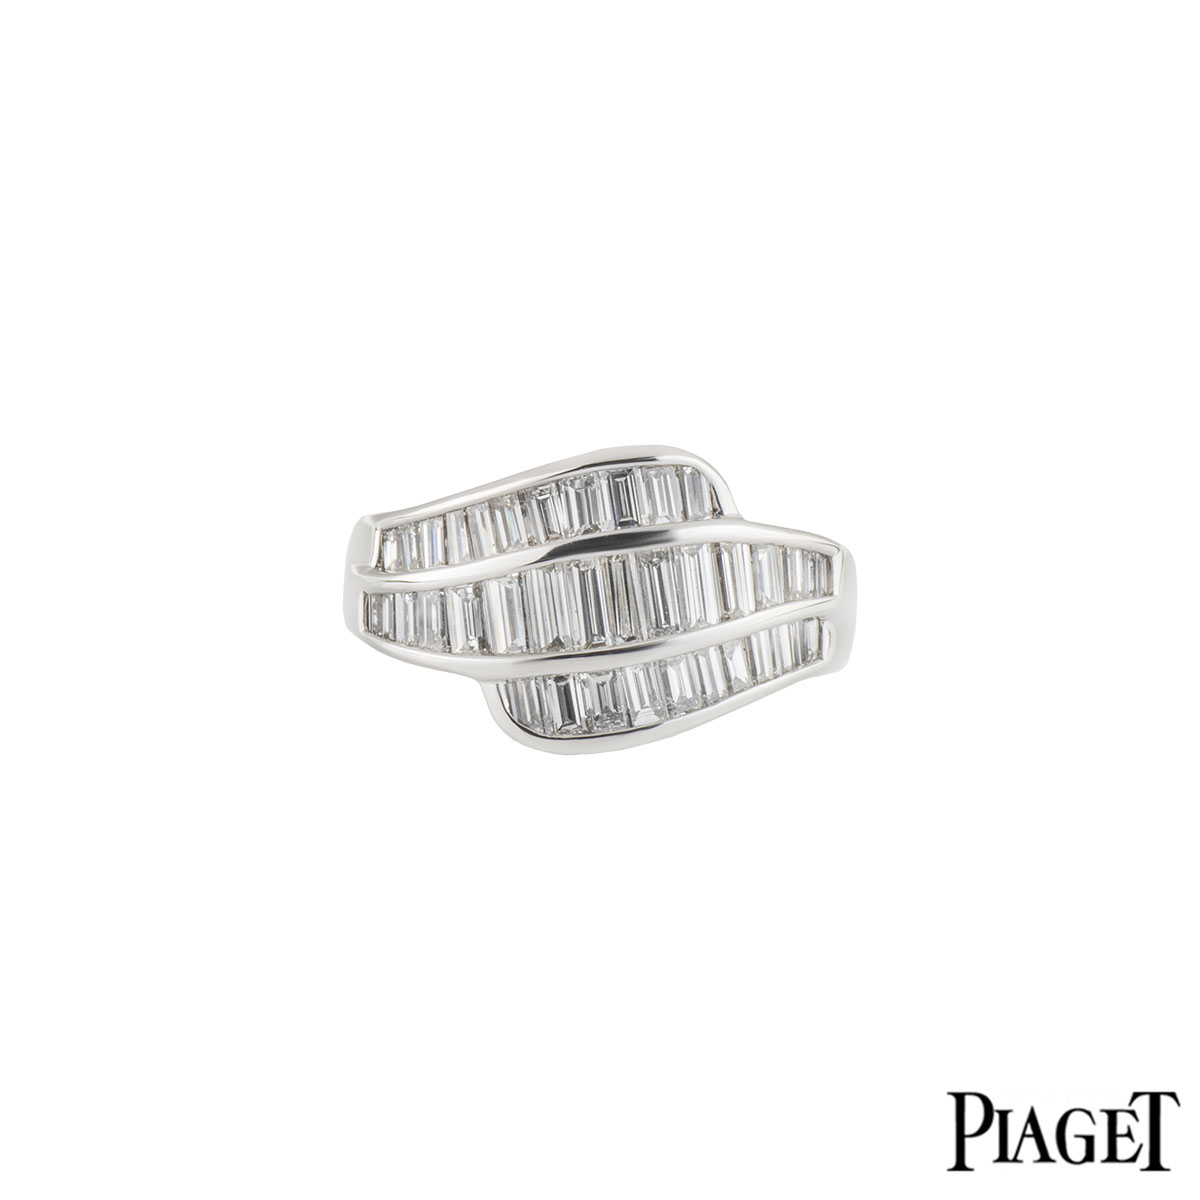 Piaget White Gold Diamond Ring